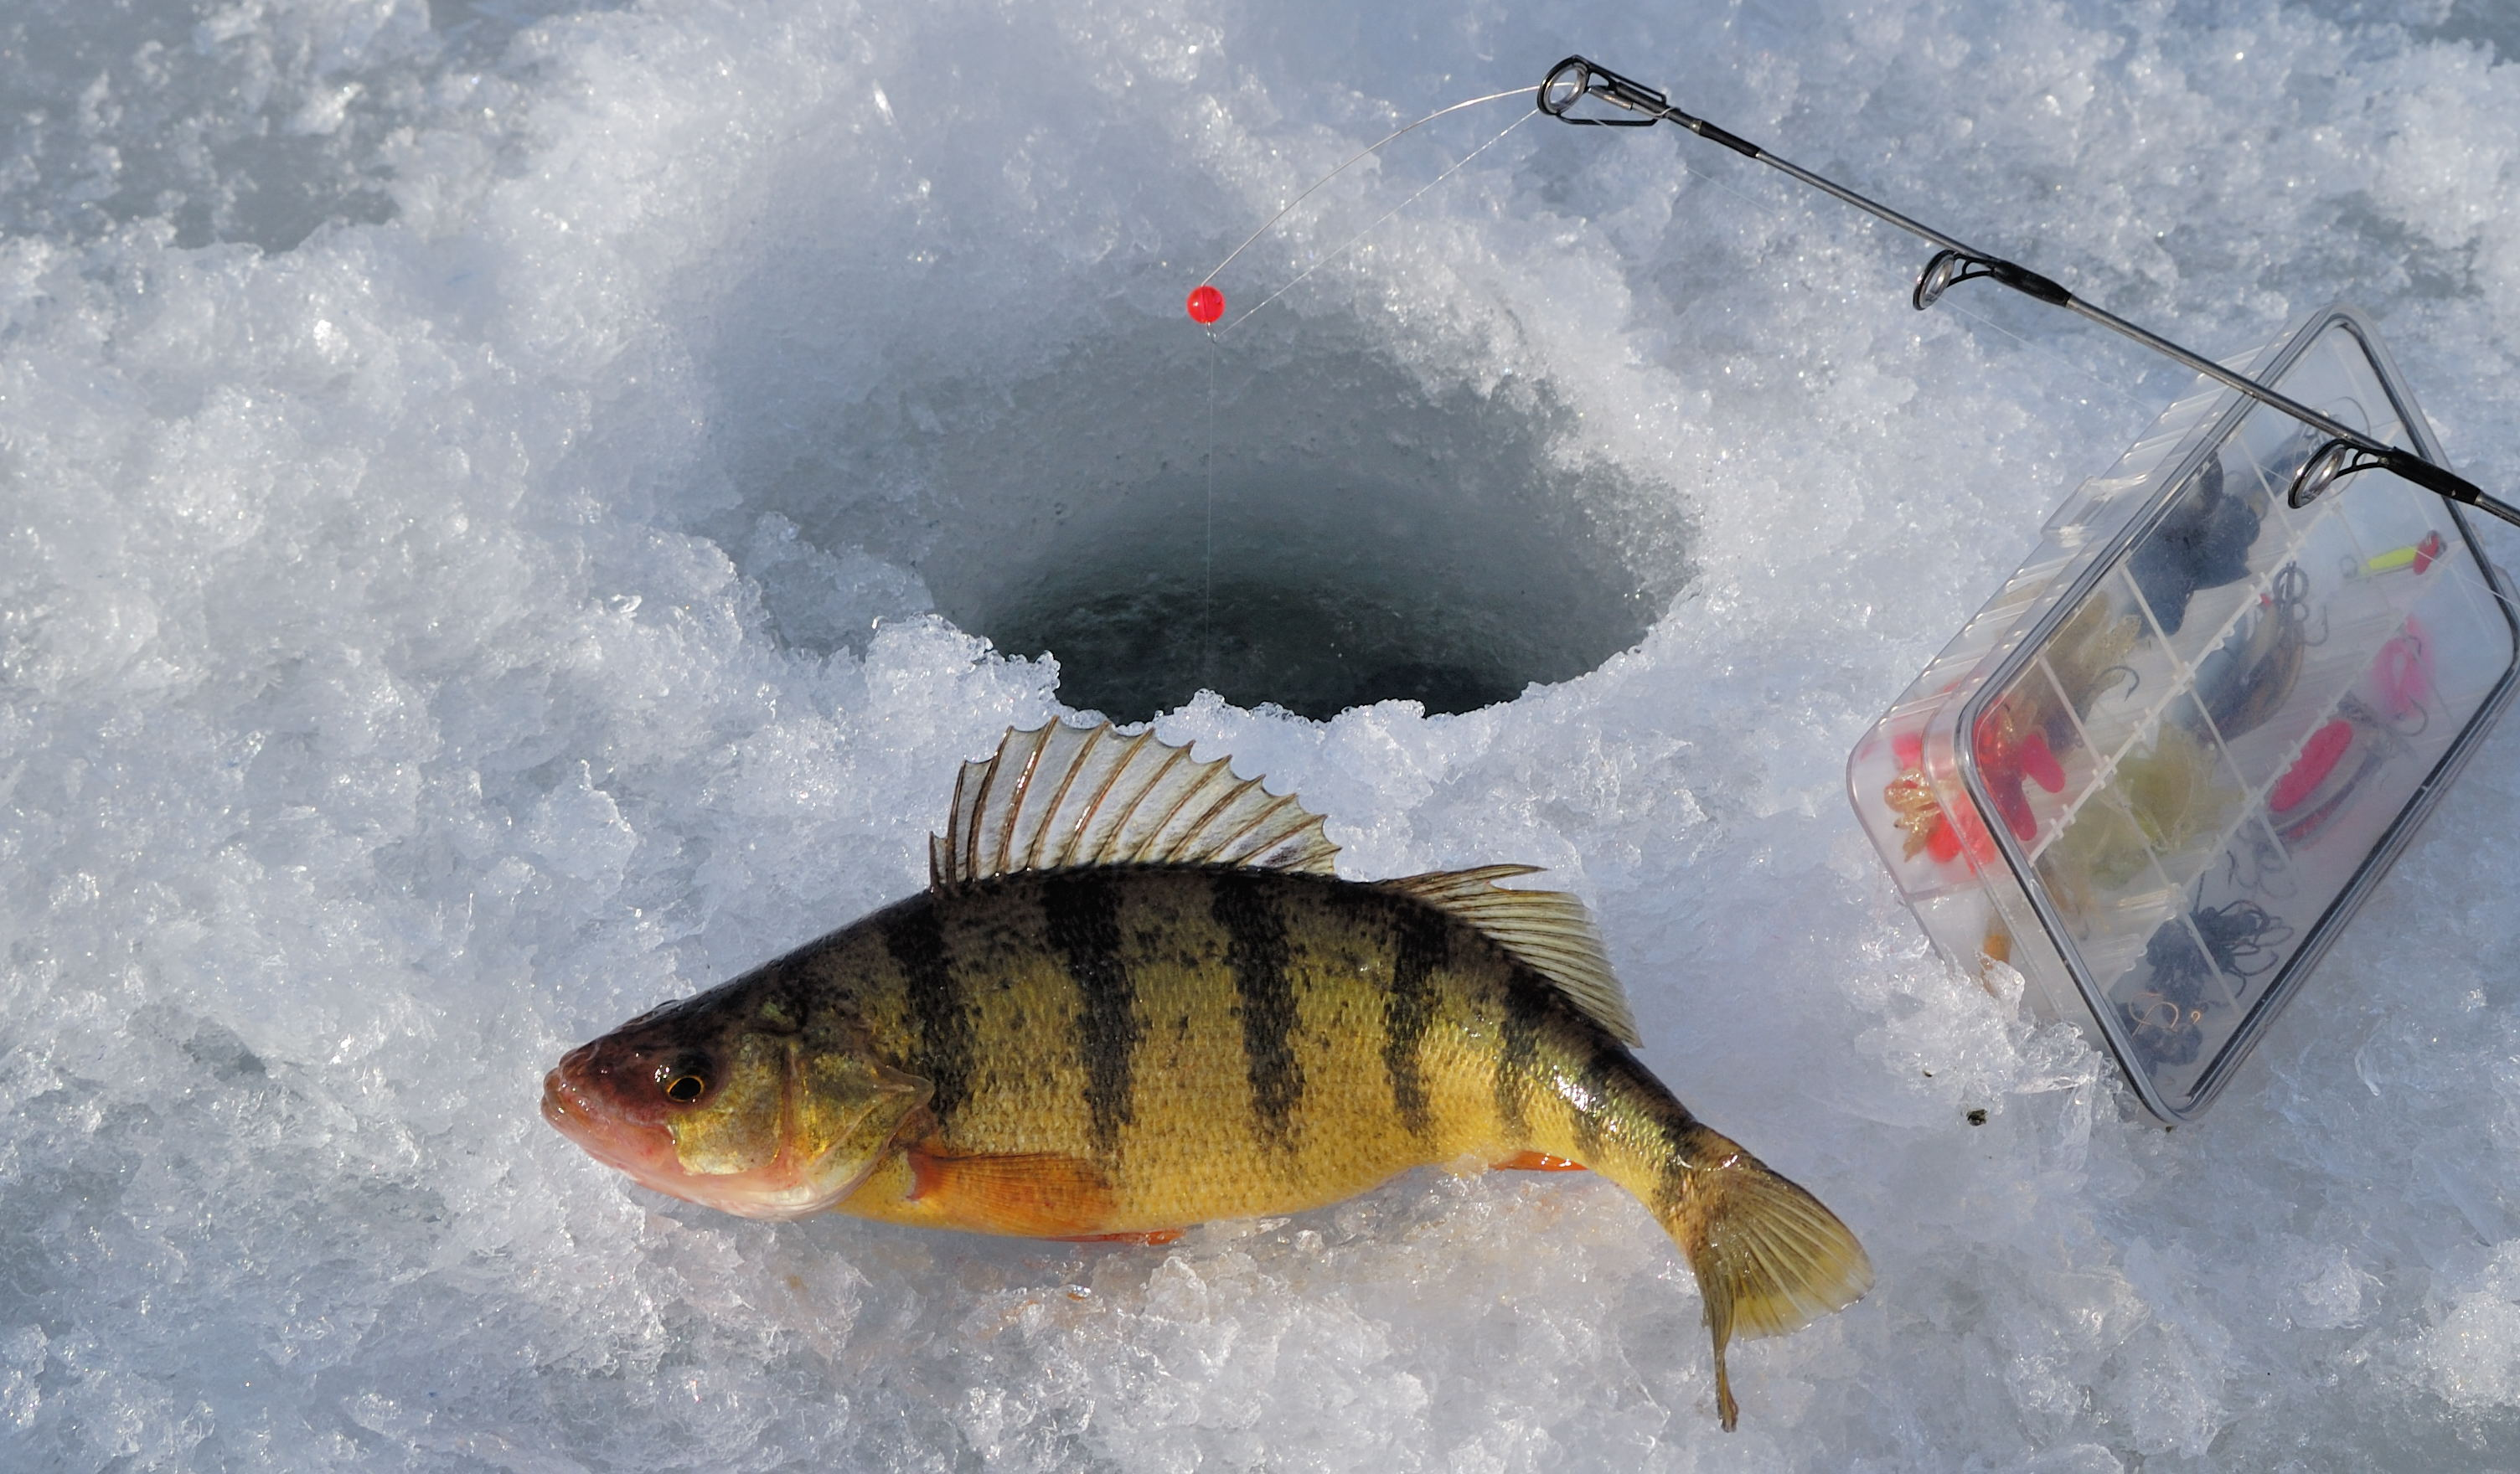 101 ice fishing guide top tips on how to go ice fishing for Go ice fish